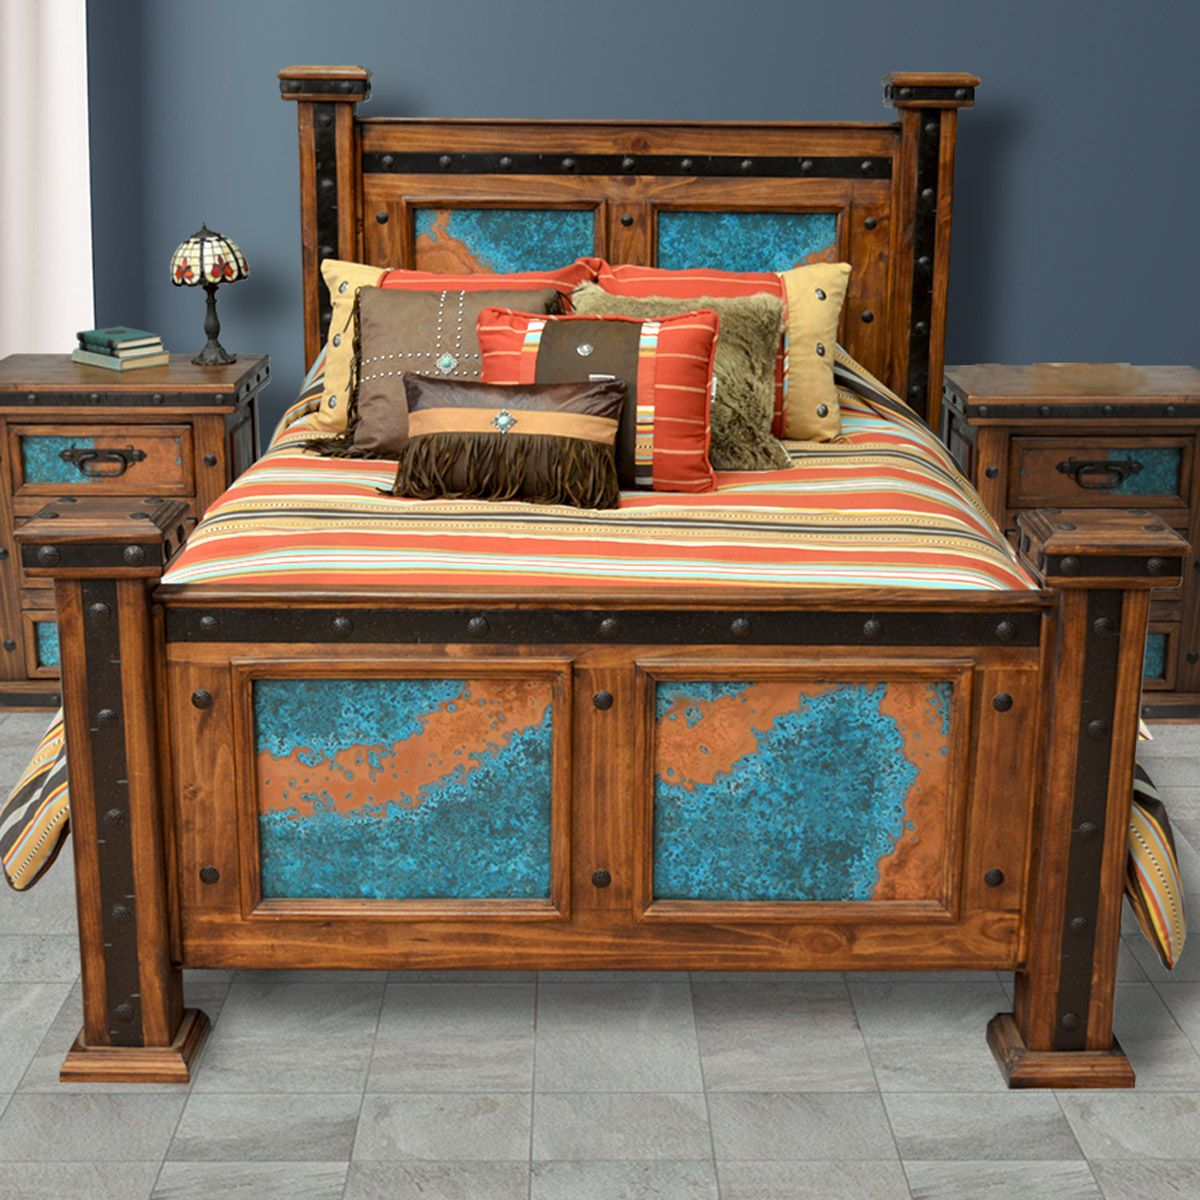 Turquoise Patina Copper Bed - King